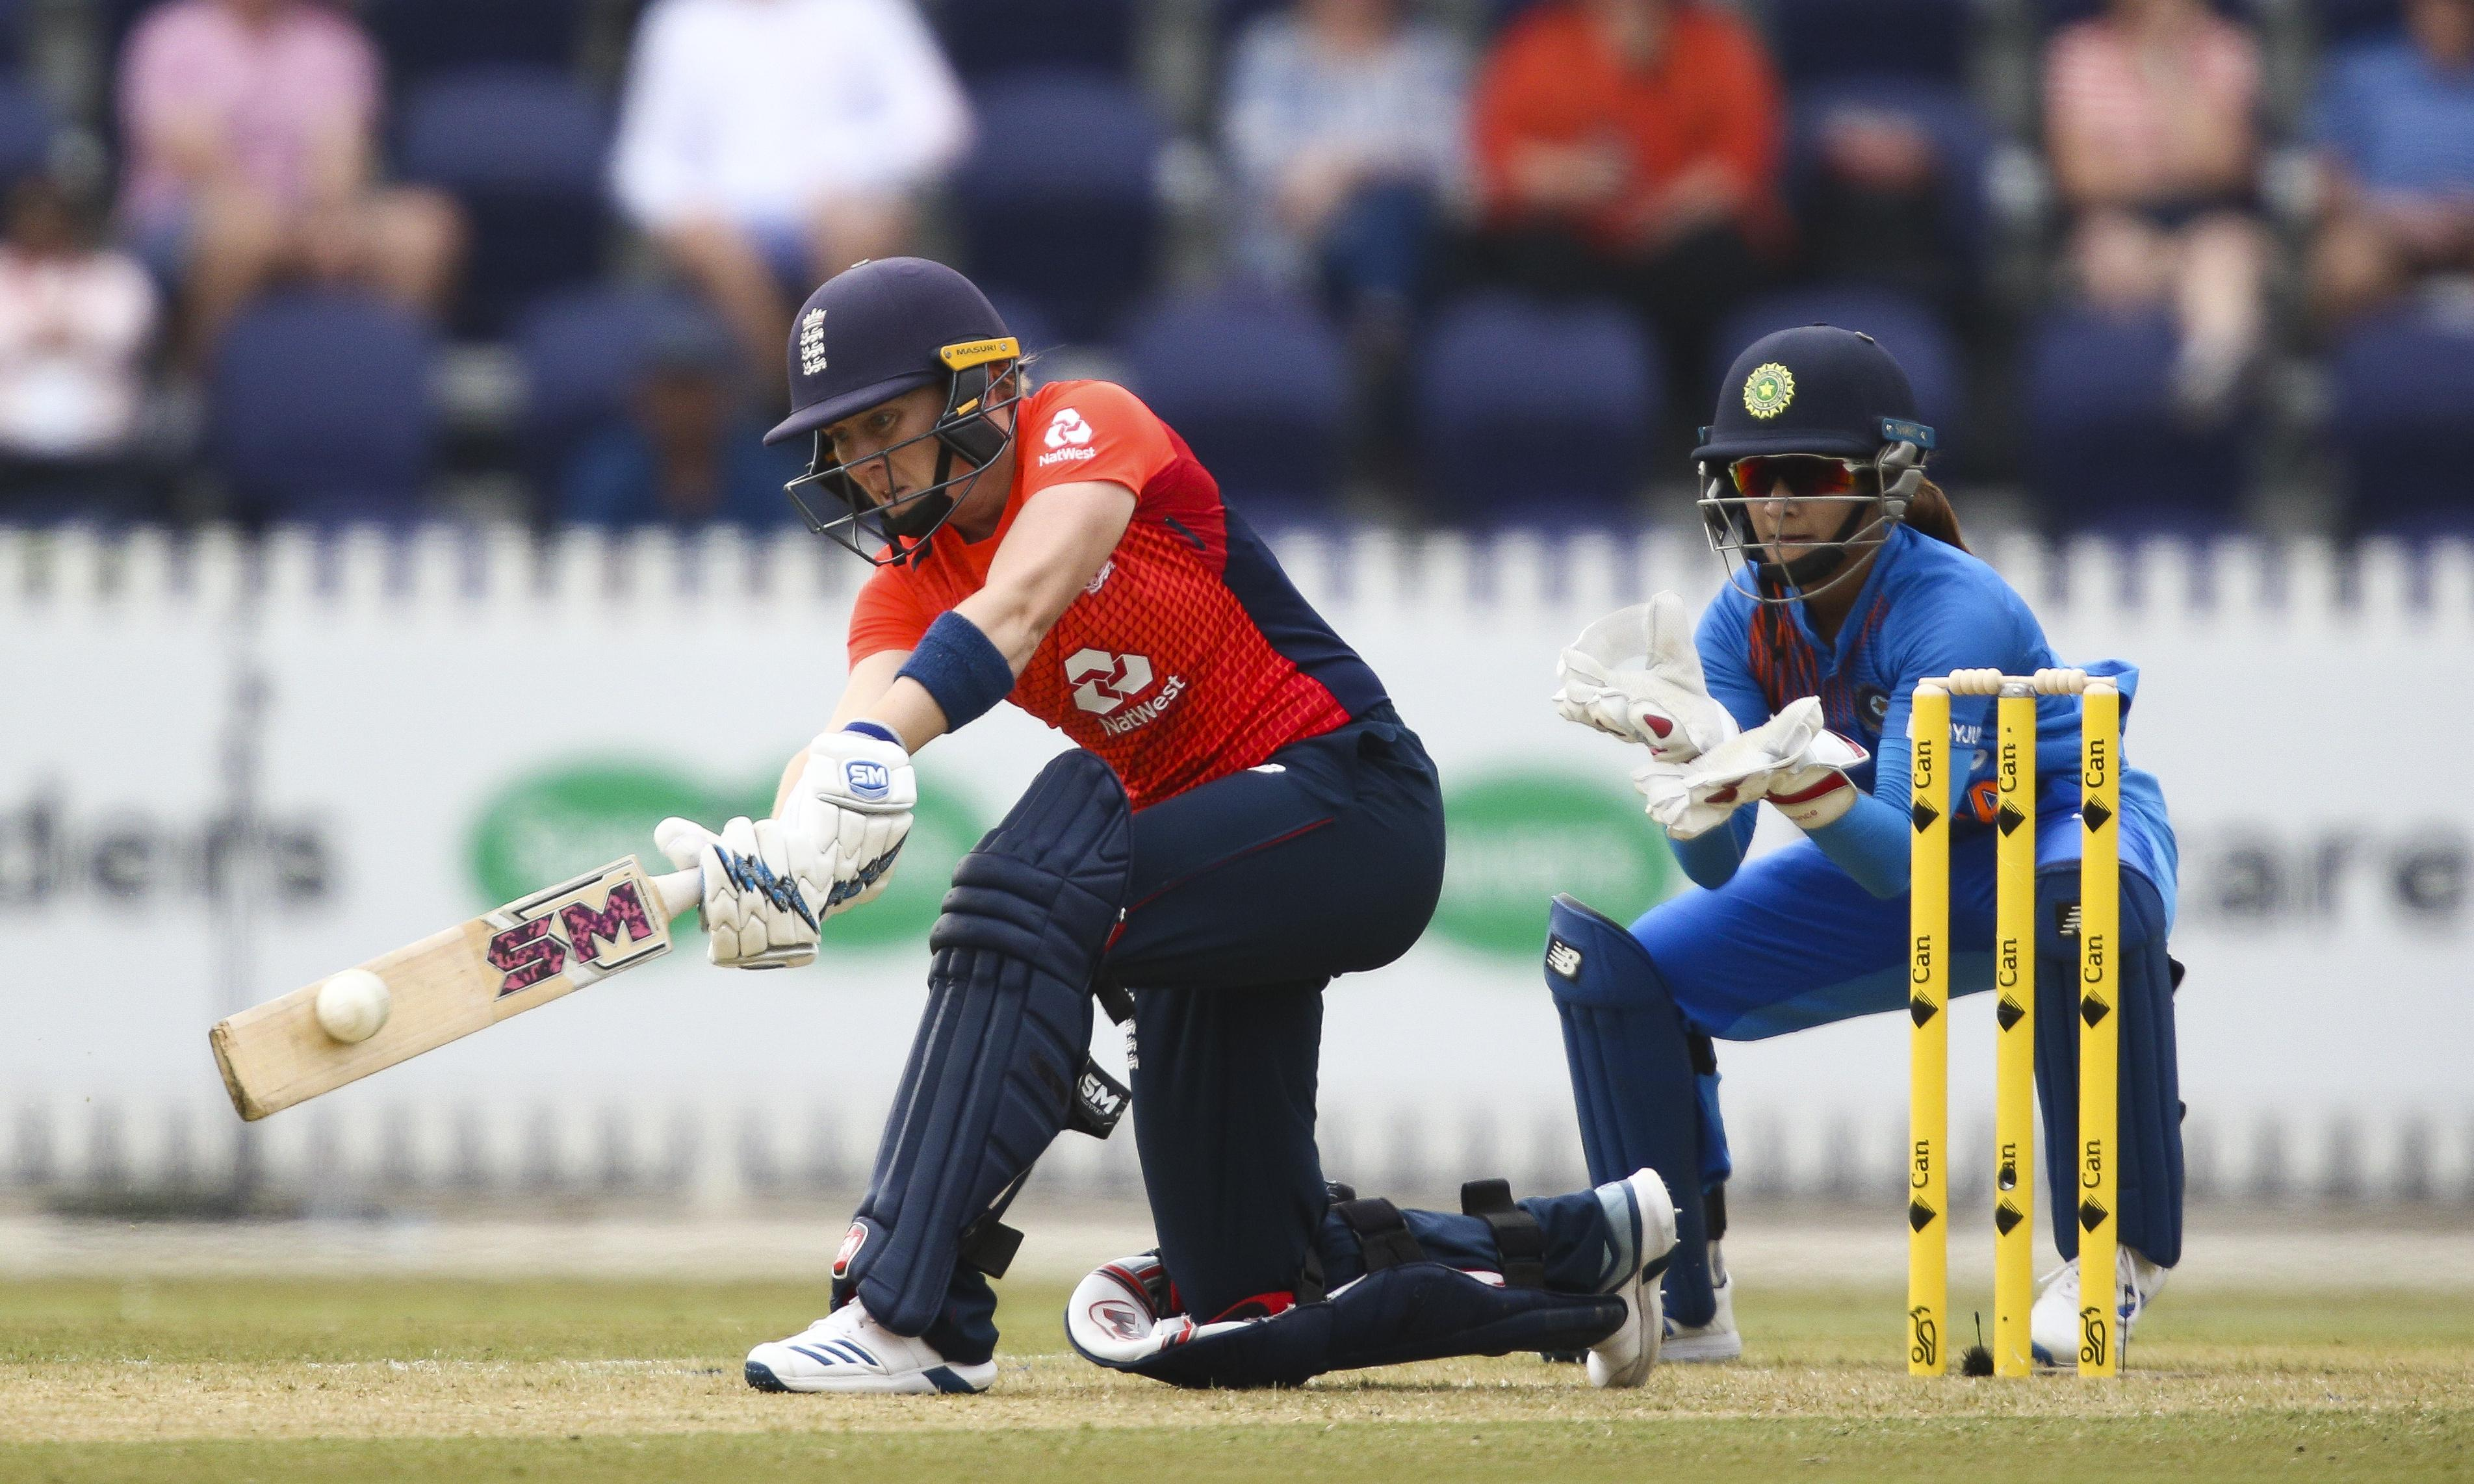 England in the running to upset Australia in Women's T20 World Cup